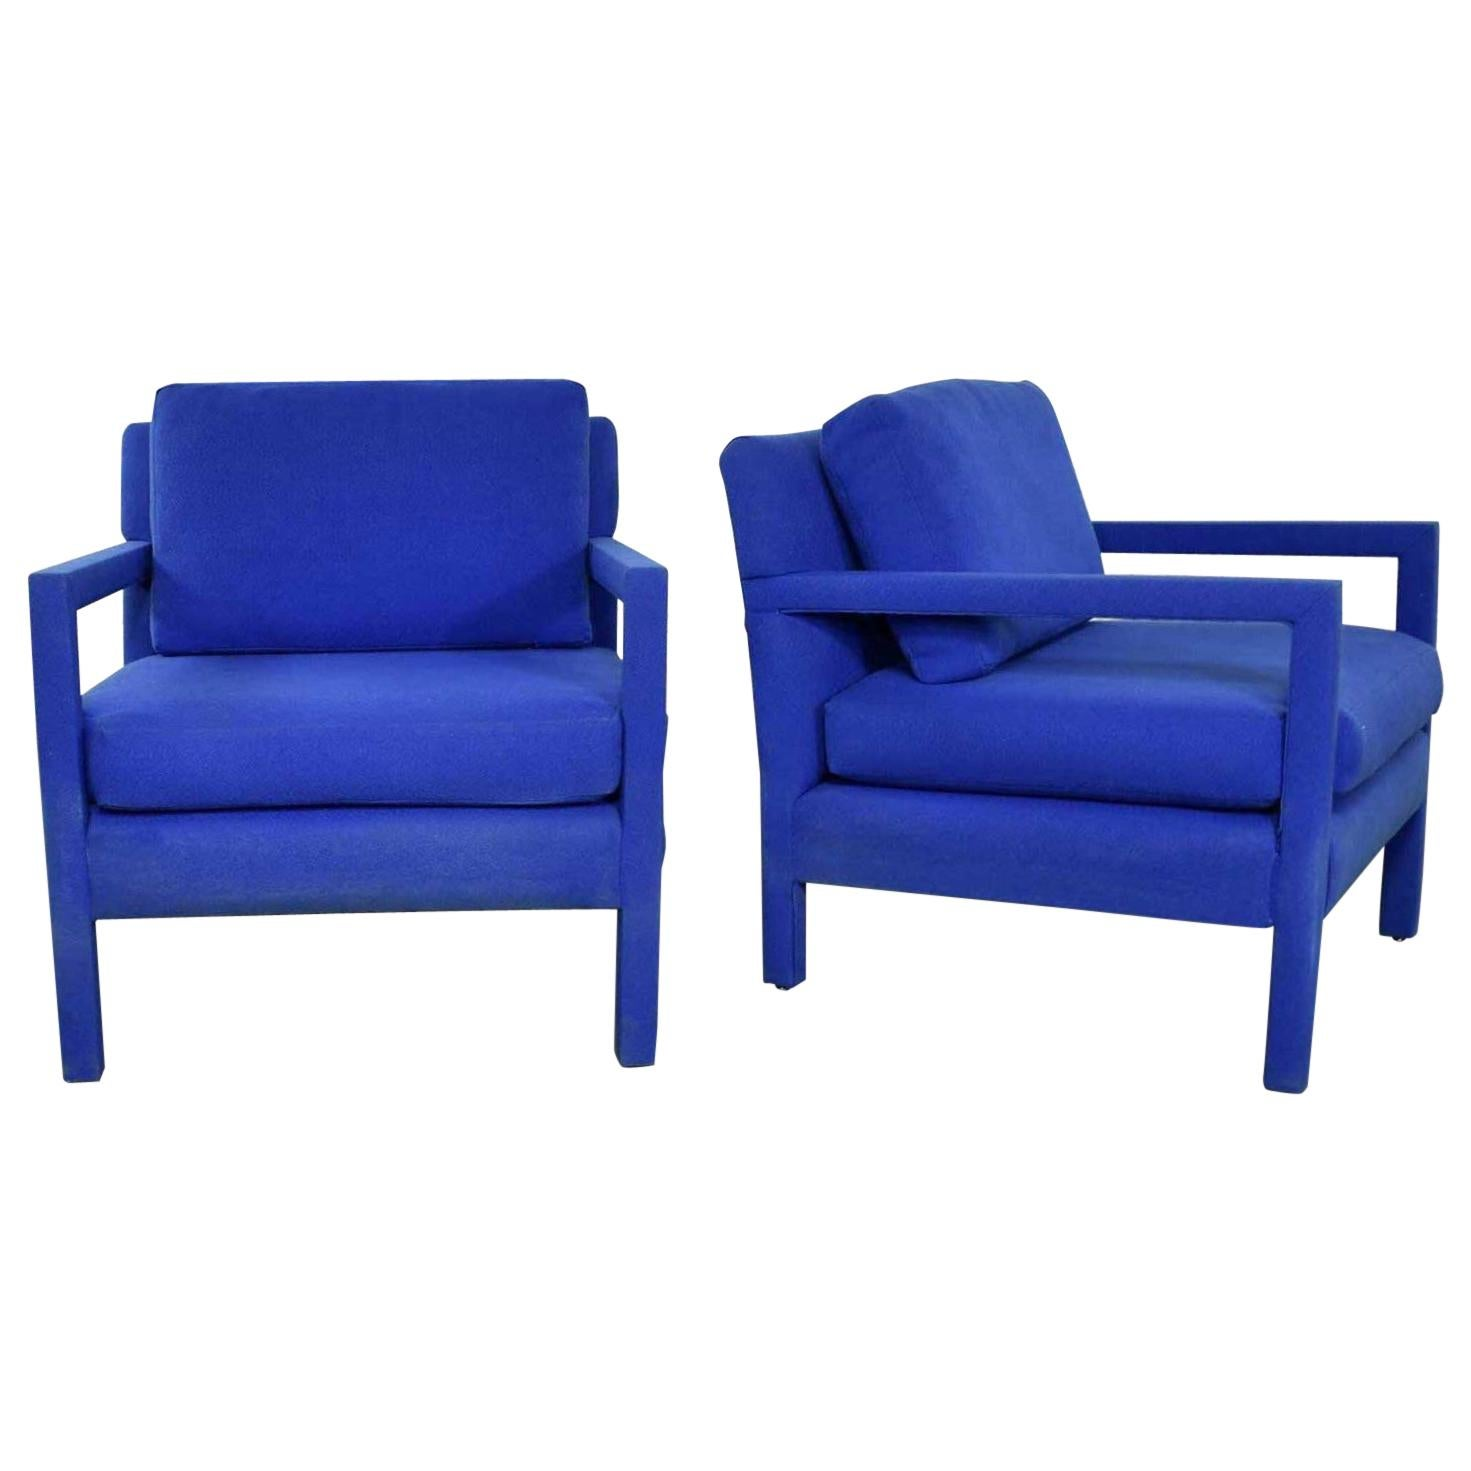 Pair Of Modern Parsons Style Club Chairs In Royal Blue After Milo Baughman